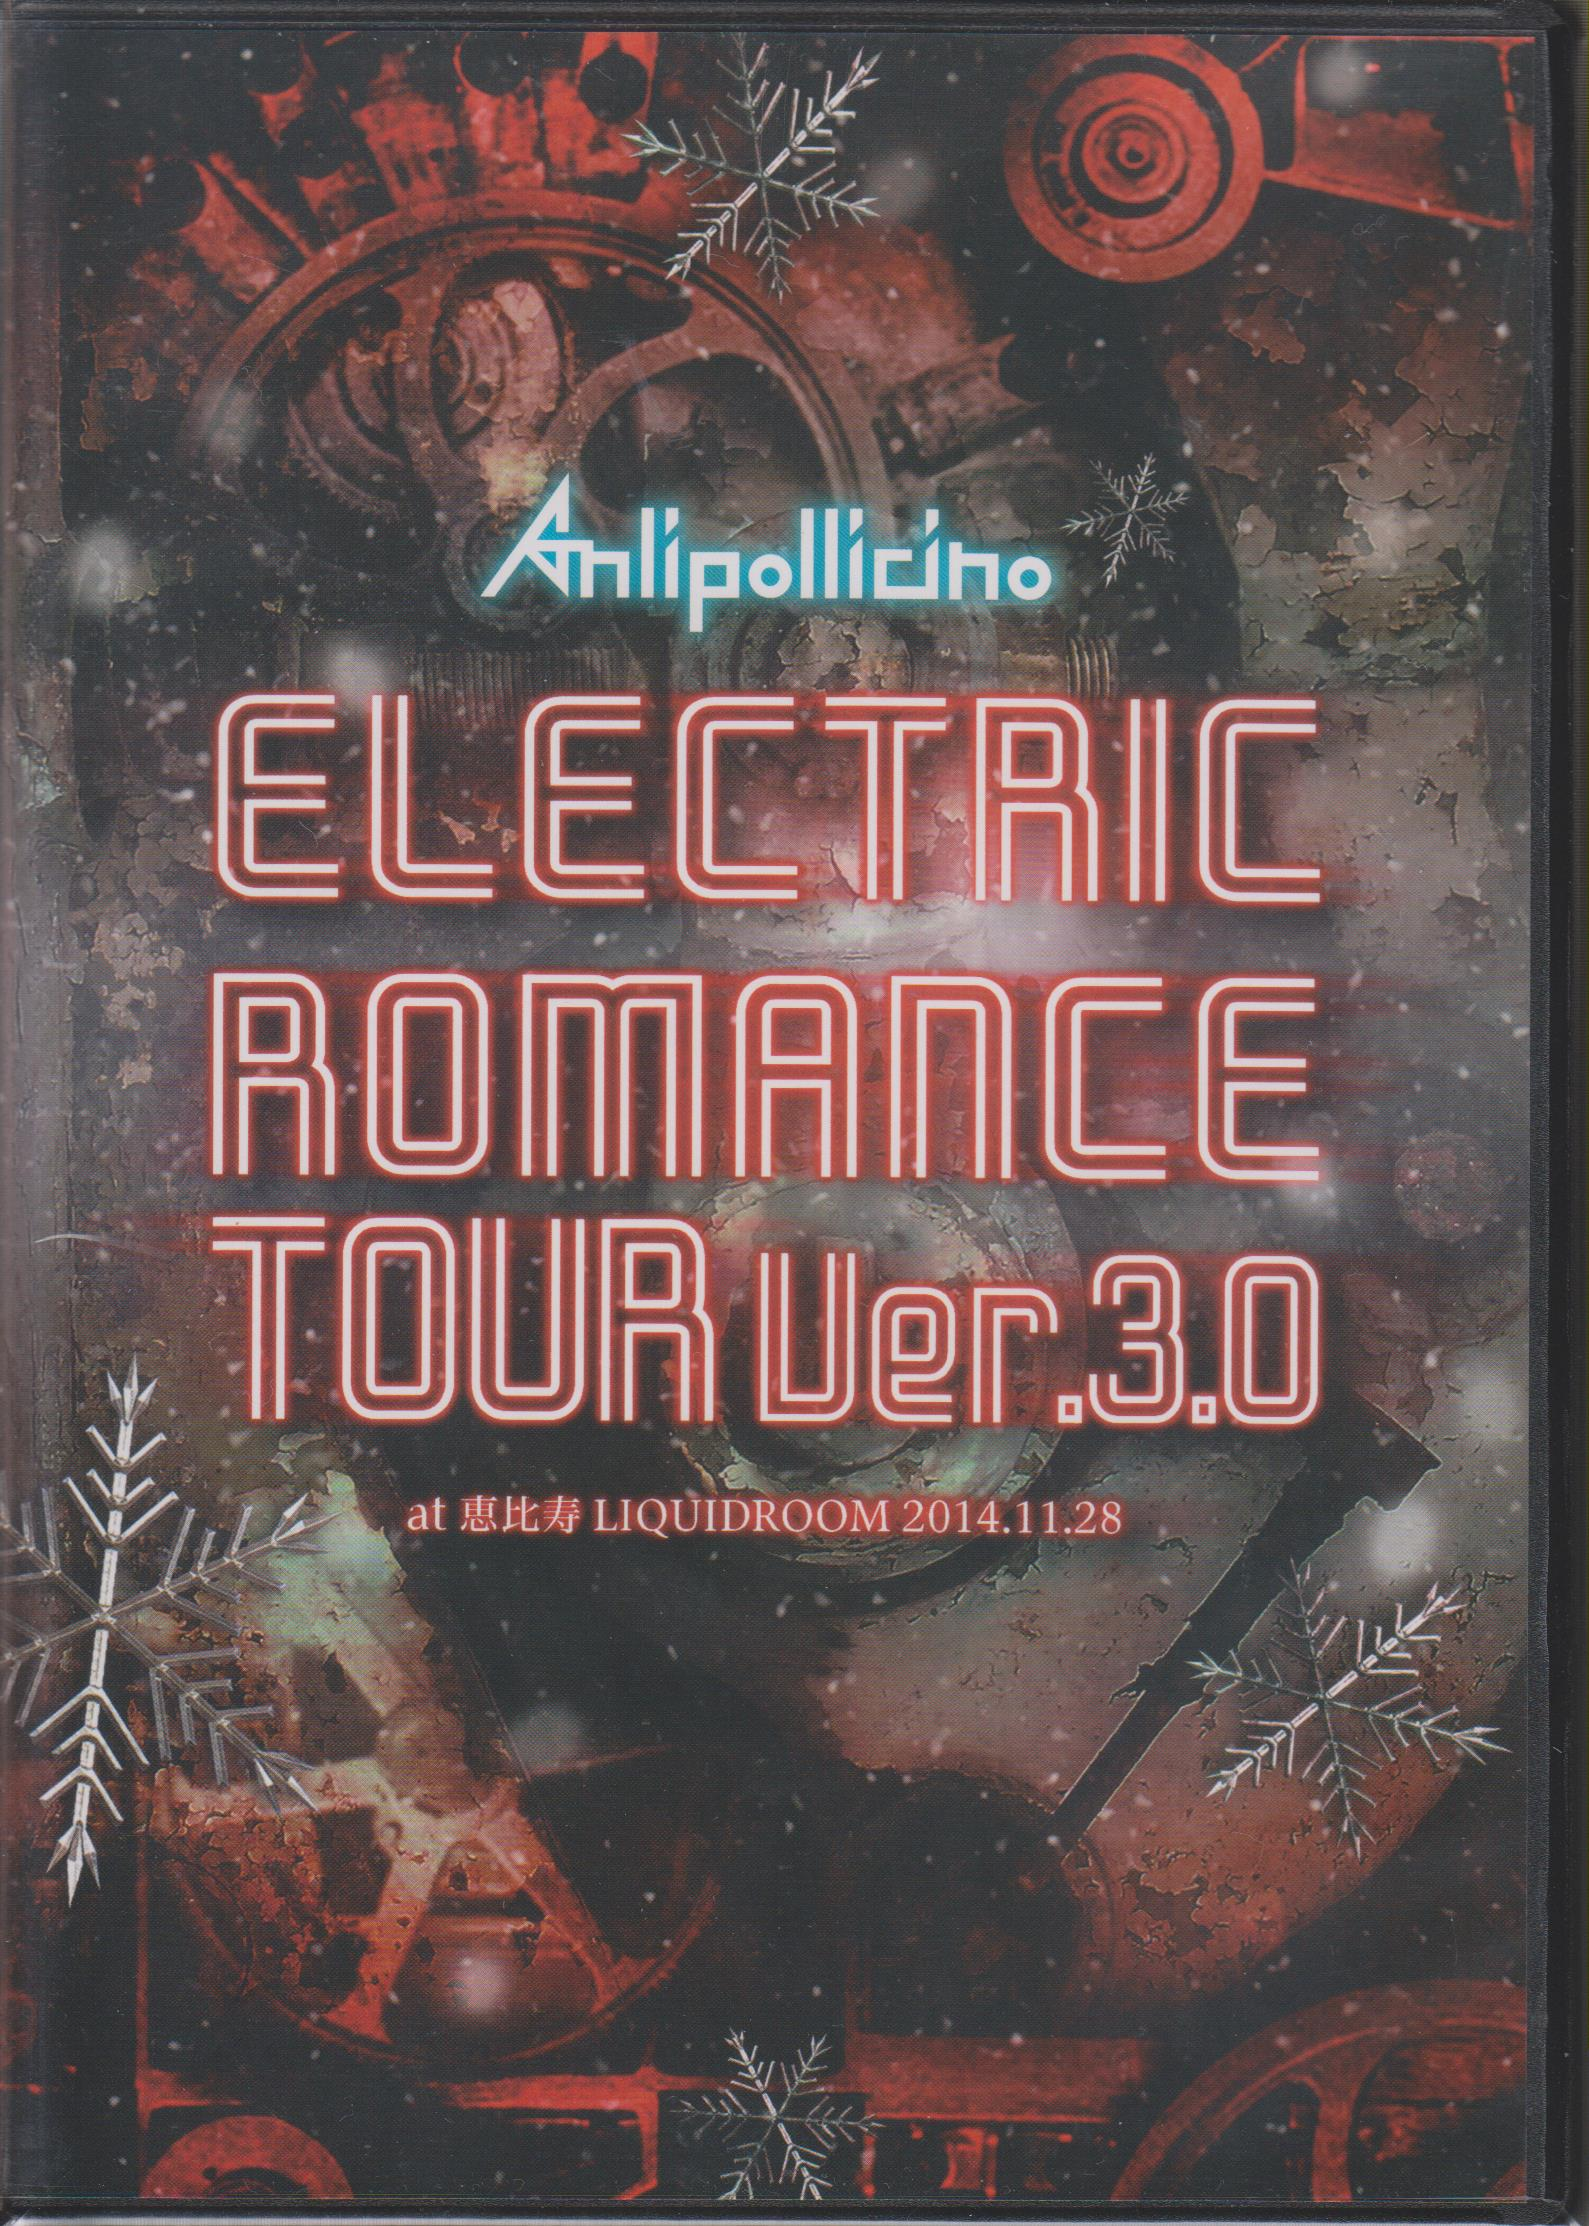 Anli Pollicino ( アンリポリチーノ )  の DVD ELECTRIC ROMANCE TOUR Ver.3.0 at 恵比寿 LIQUIDROOM 2014.11.28